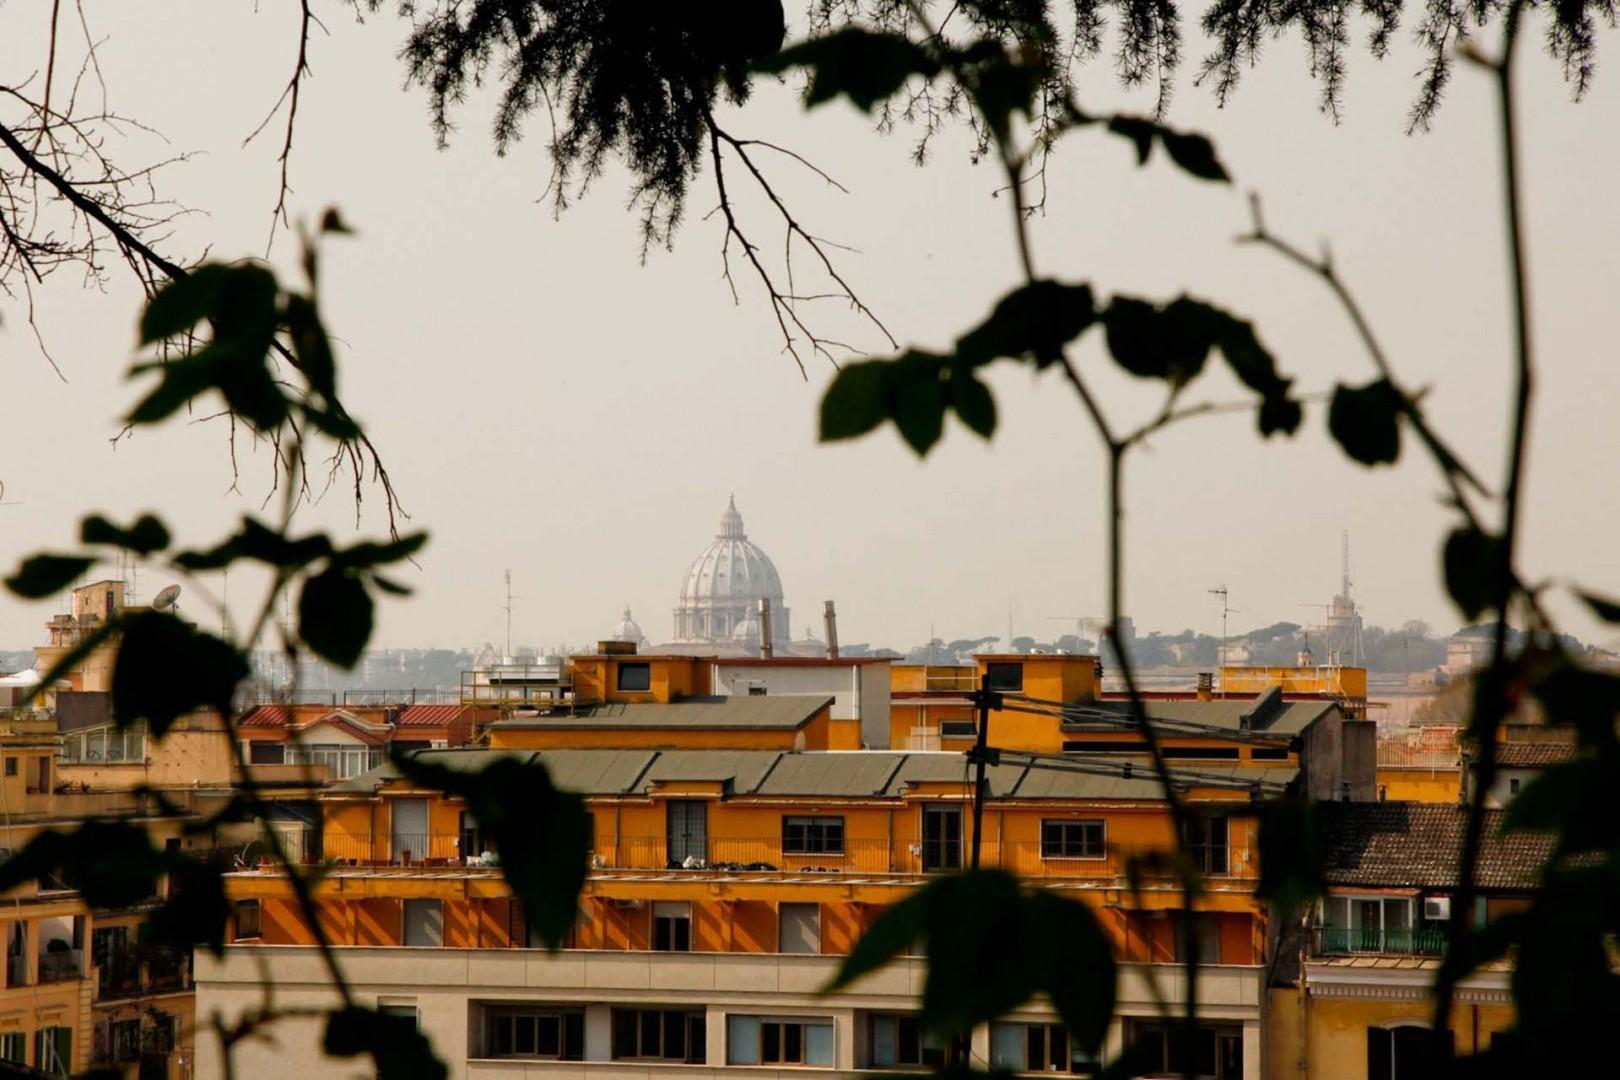 View from the garden. That is the dome of St. Peter's. Wow!